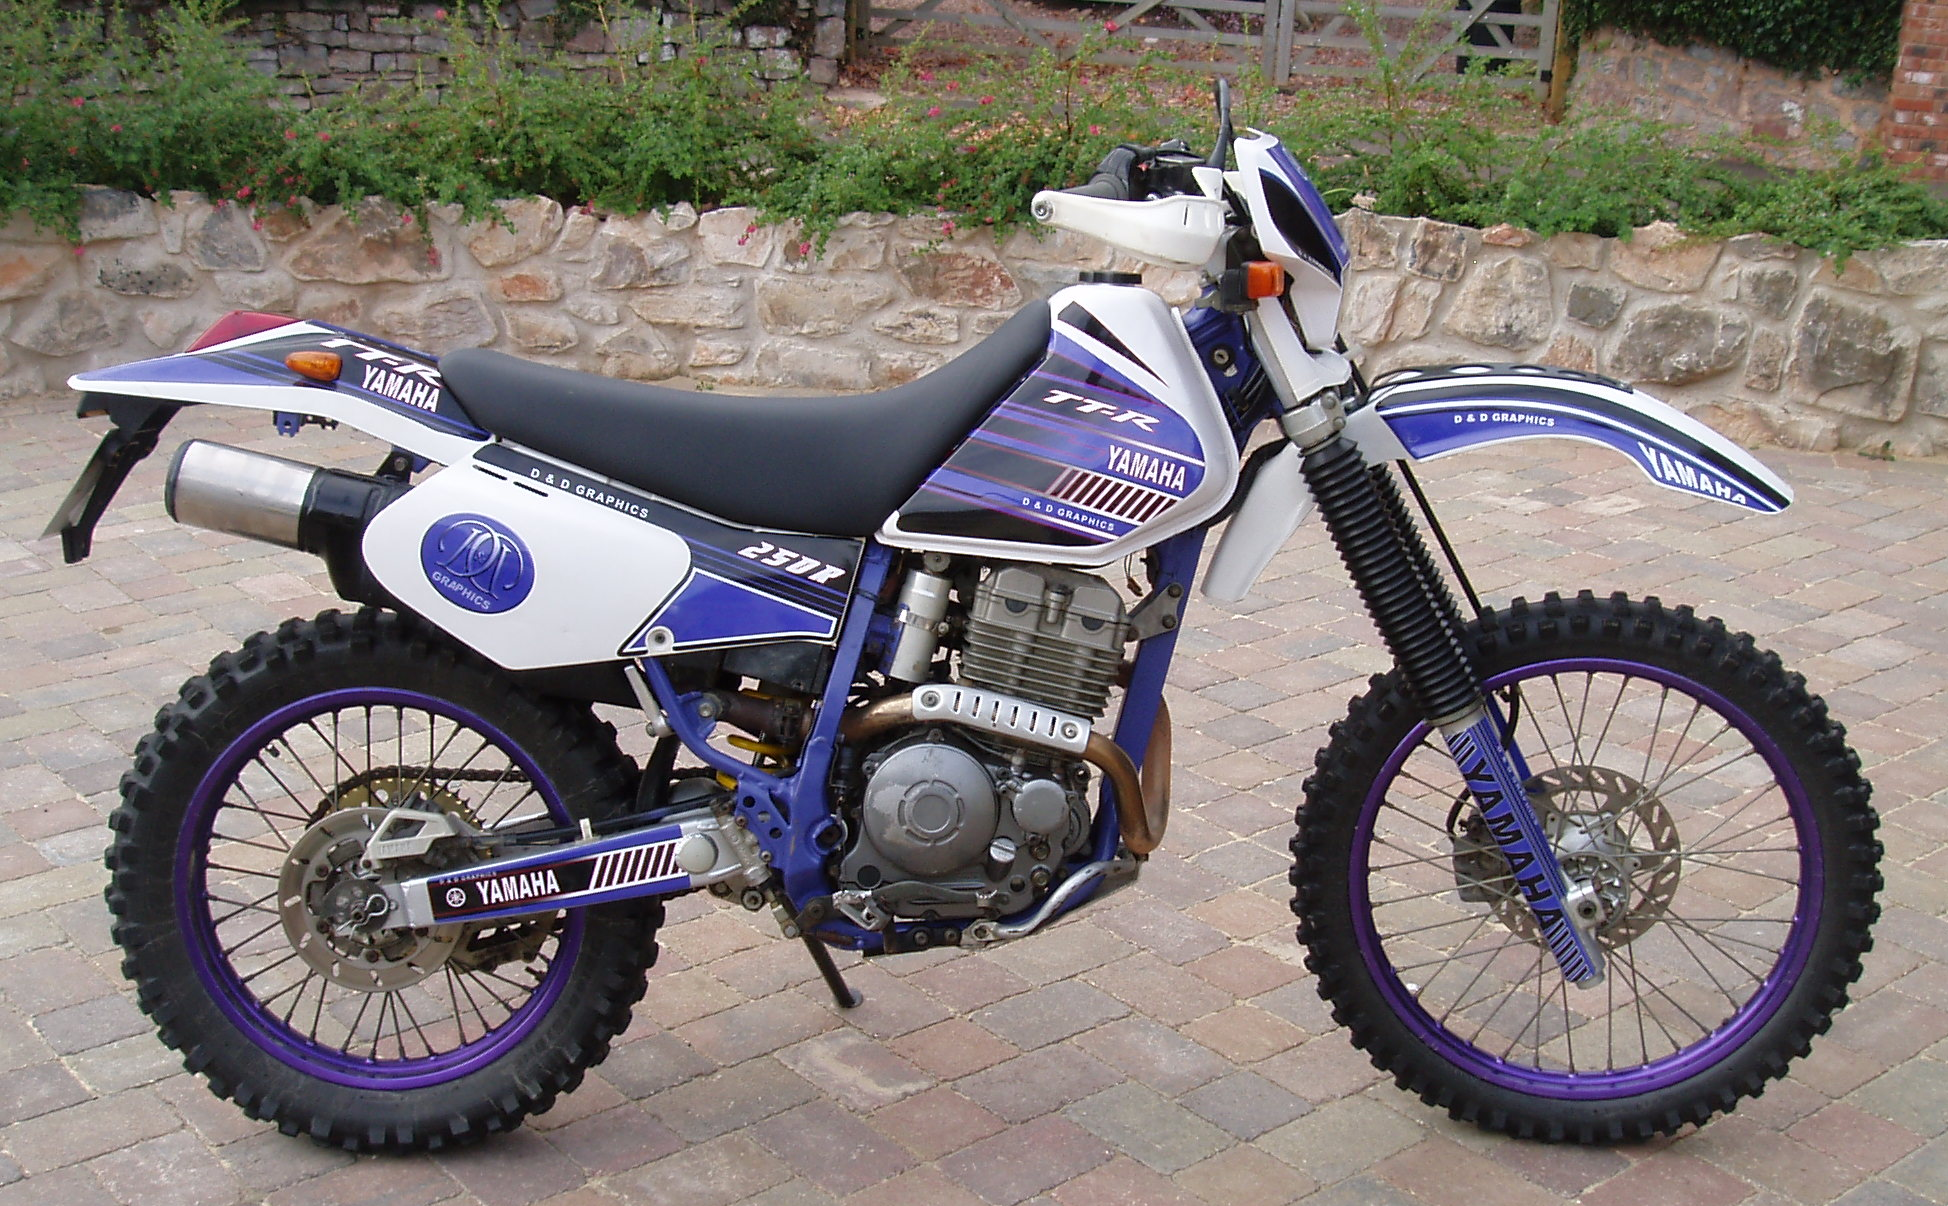 how to remove tacho drive from xt600